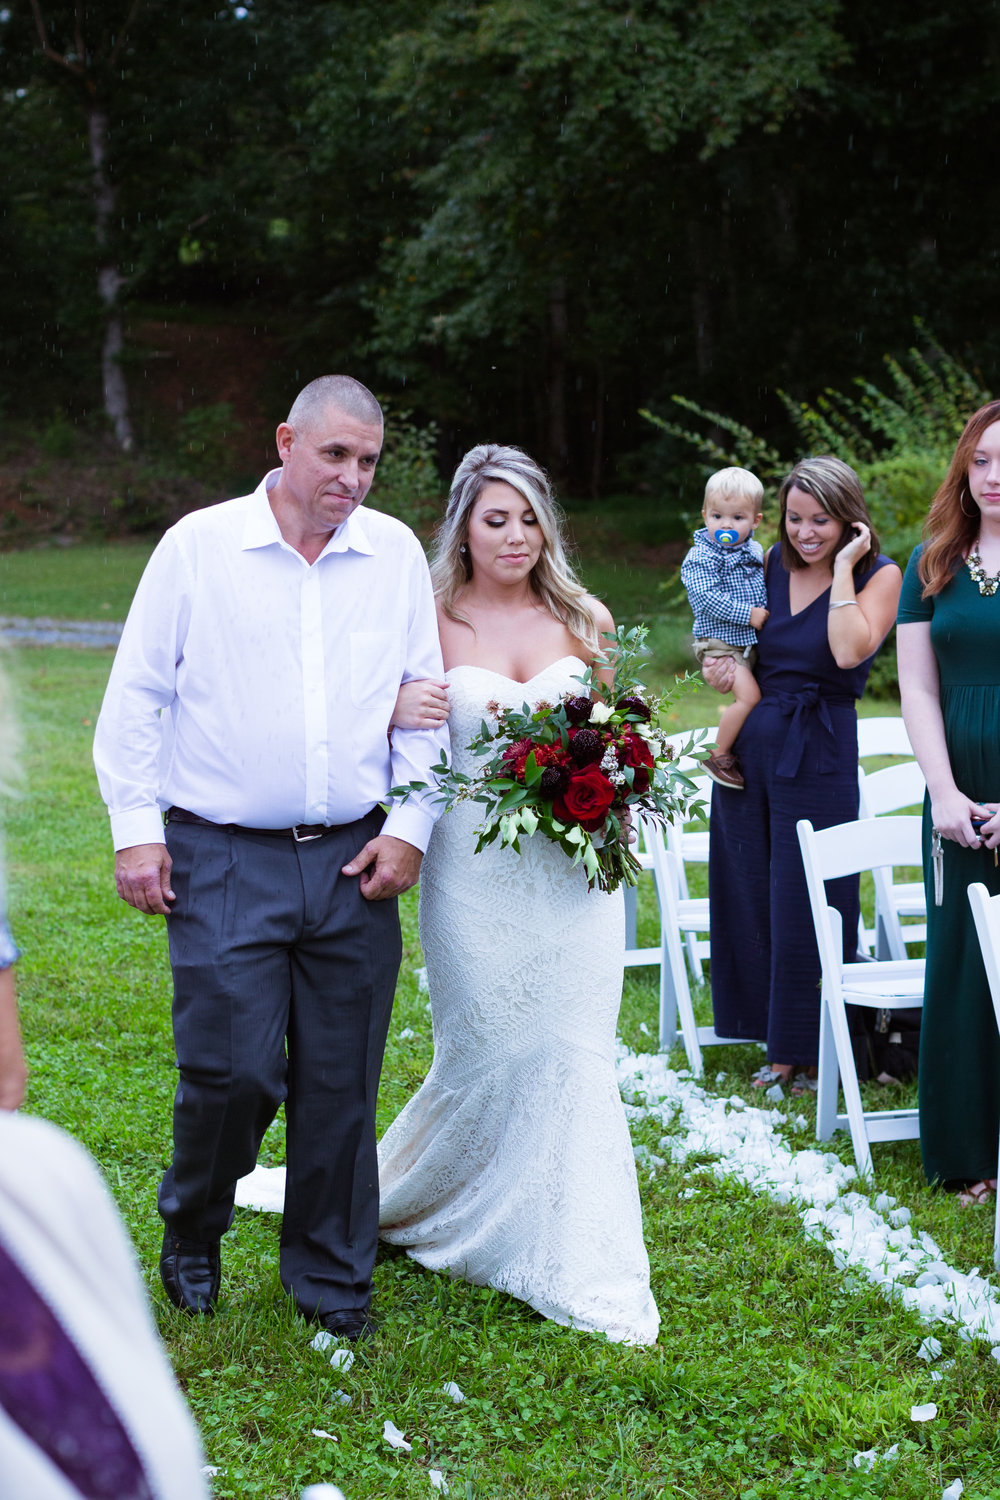 Kramer Wedding - Ceremony-9.jpg